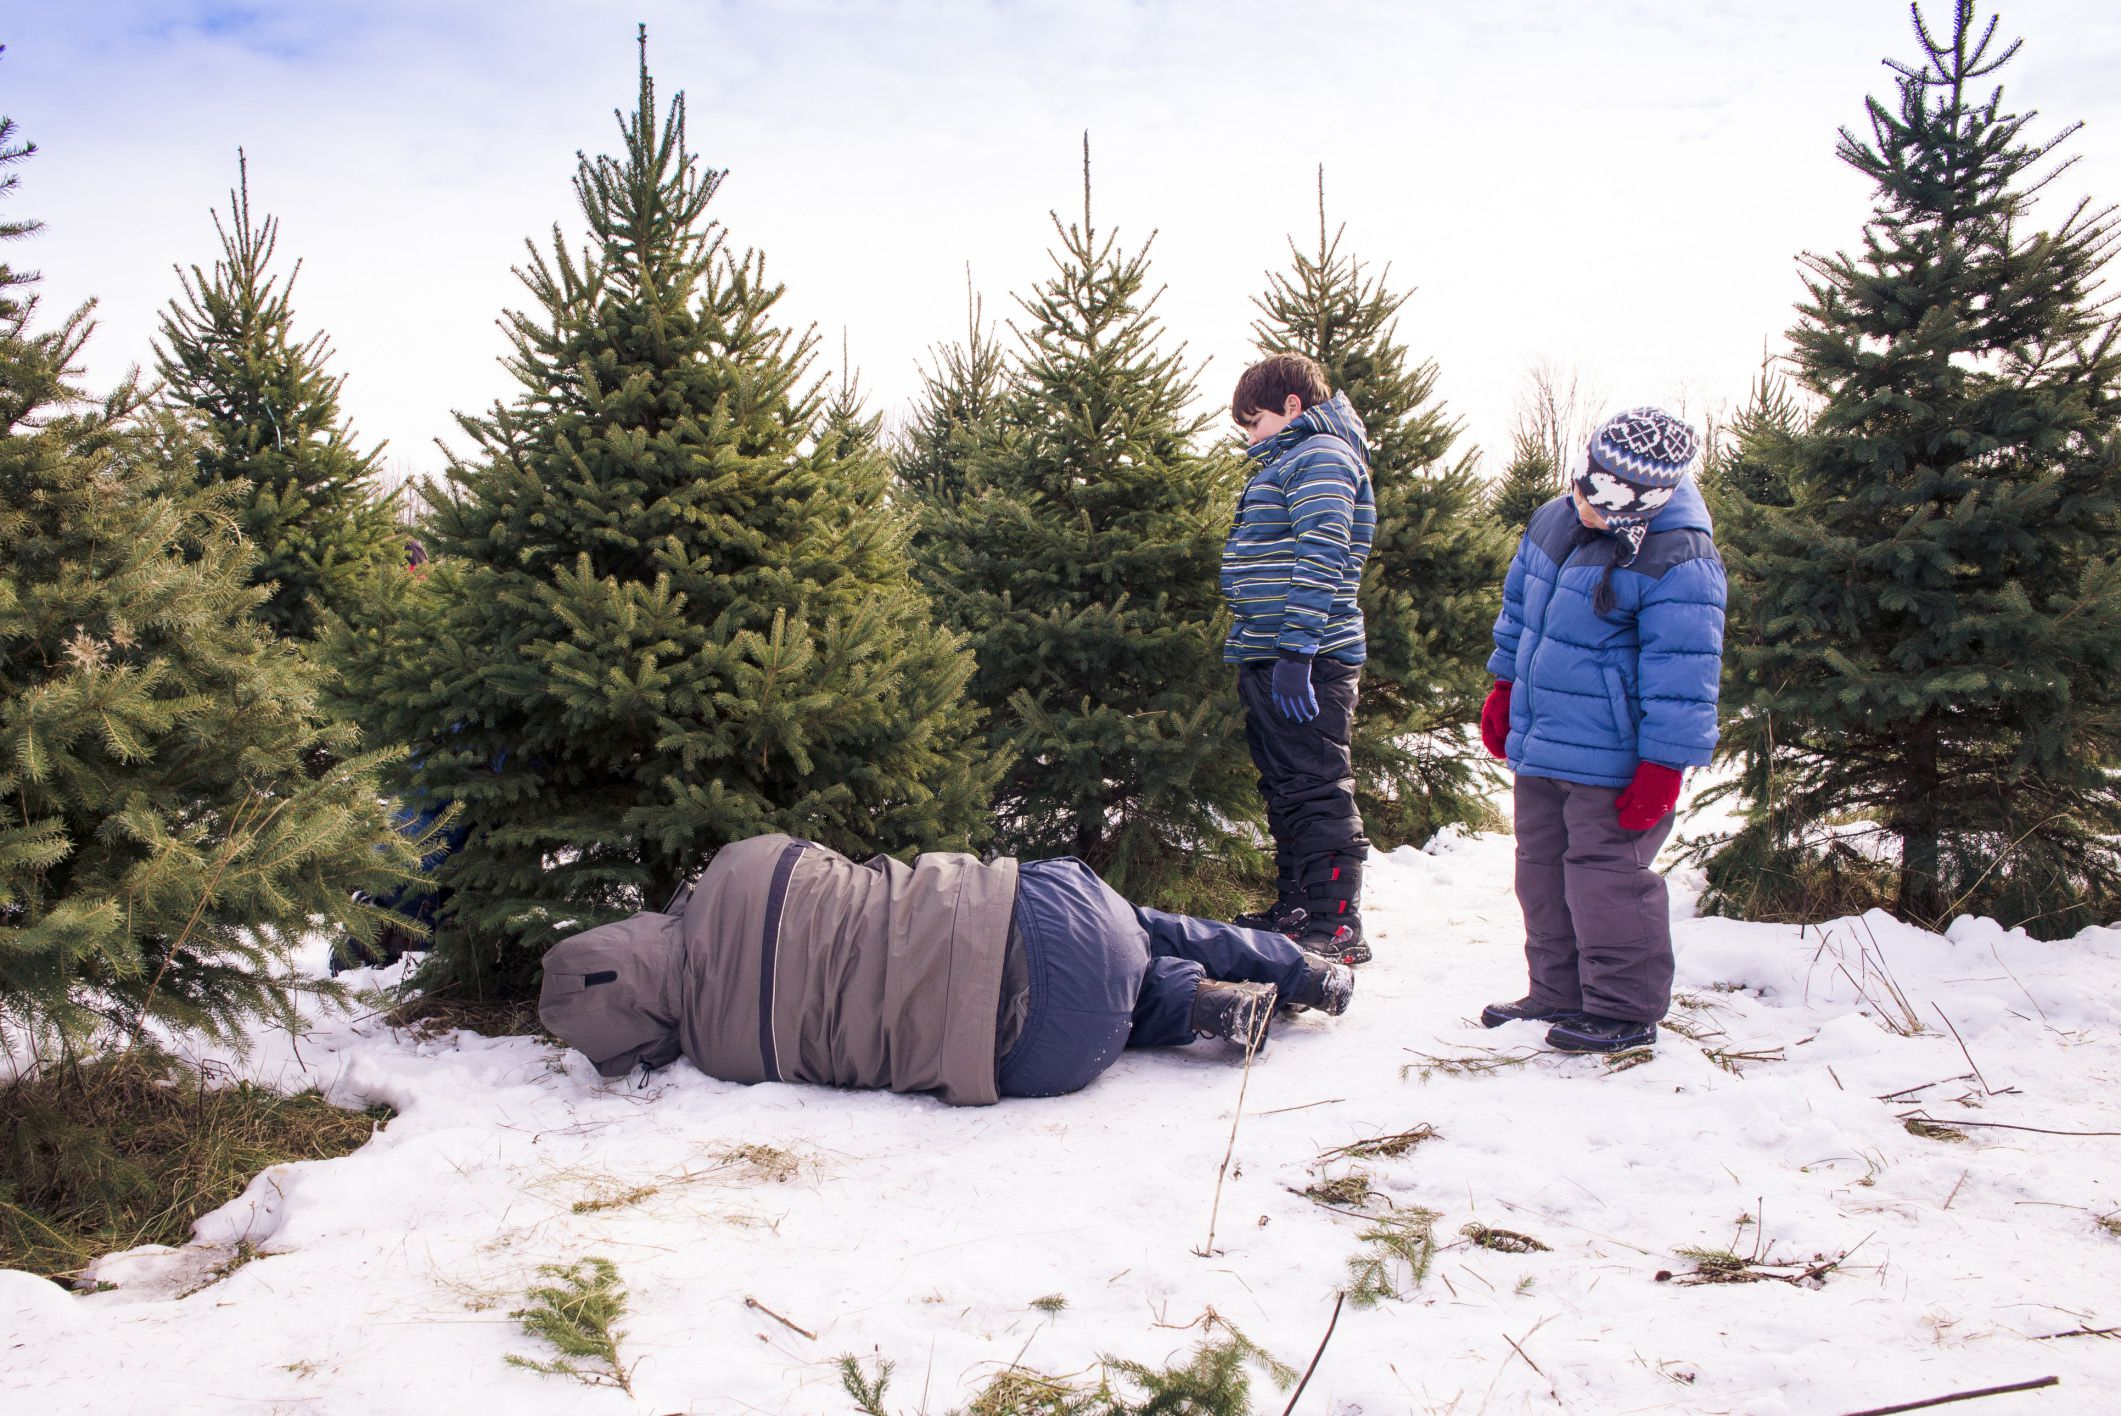 15 Places To Cut Your Own Christmas Tree In Minnesota - Christmas Trees To Cut Down